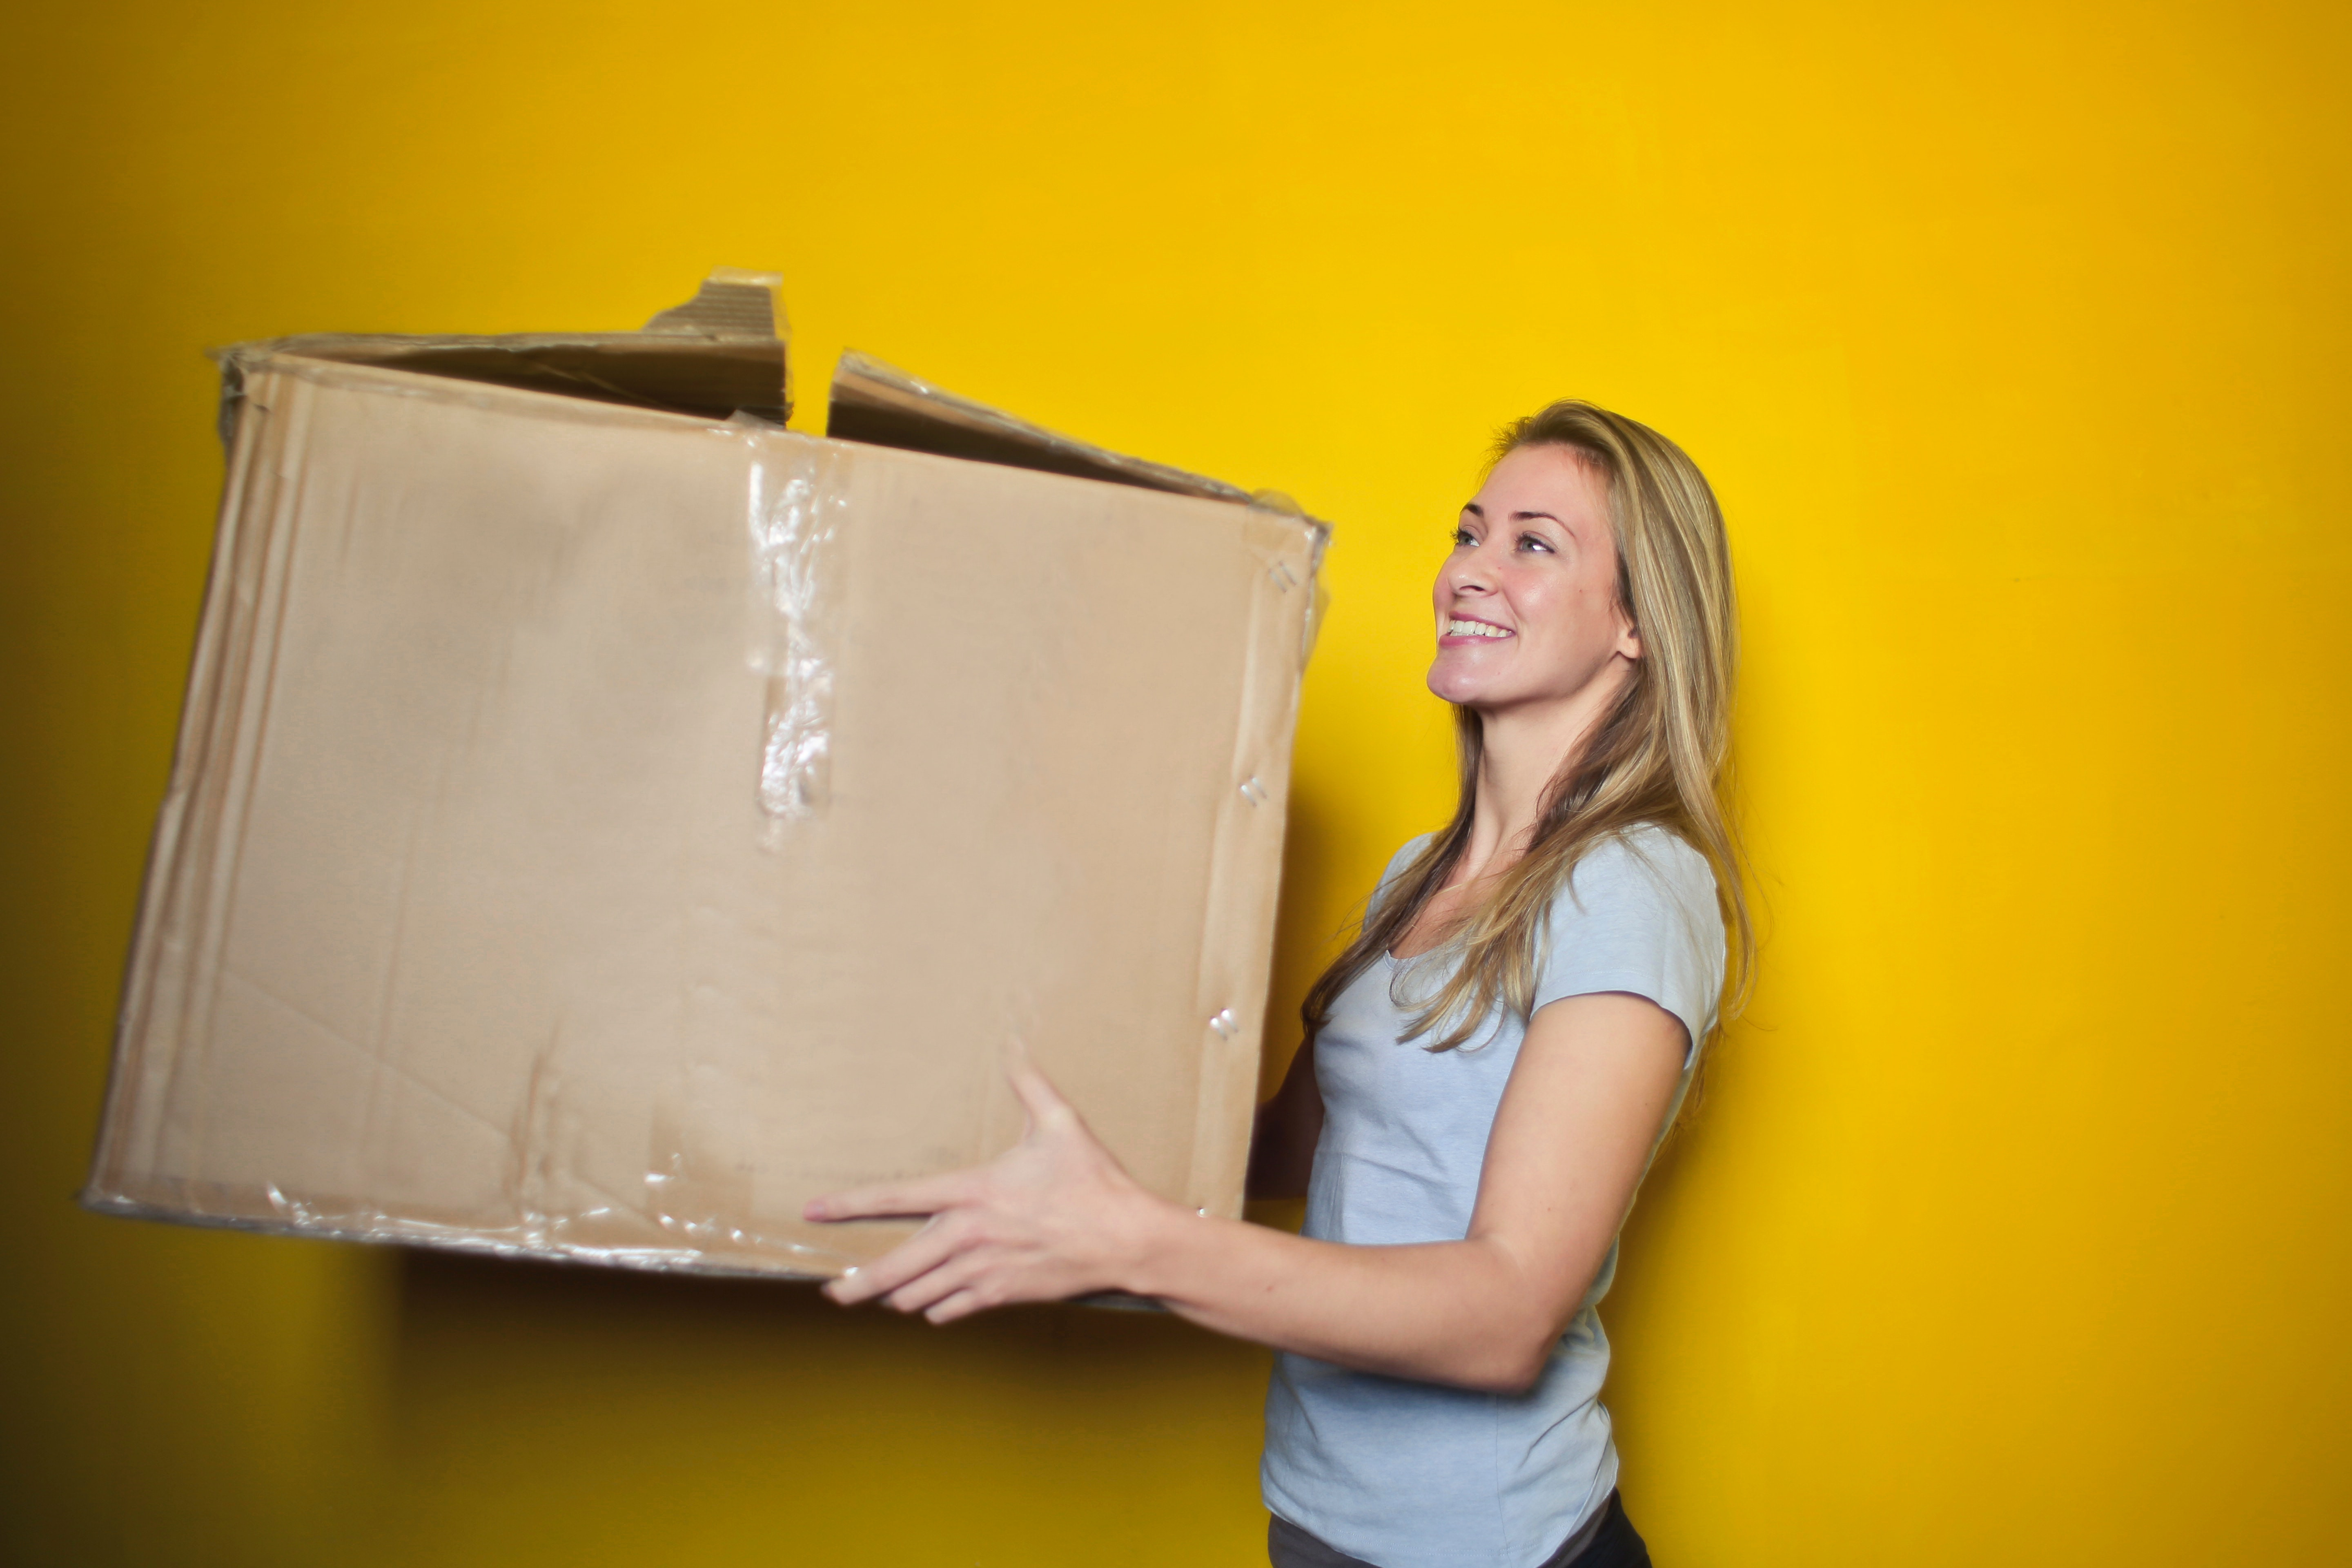 How Shipping And Fulfillment Can Make Your Customers Smile